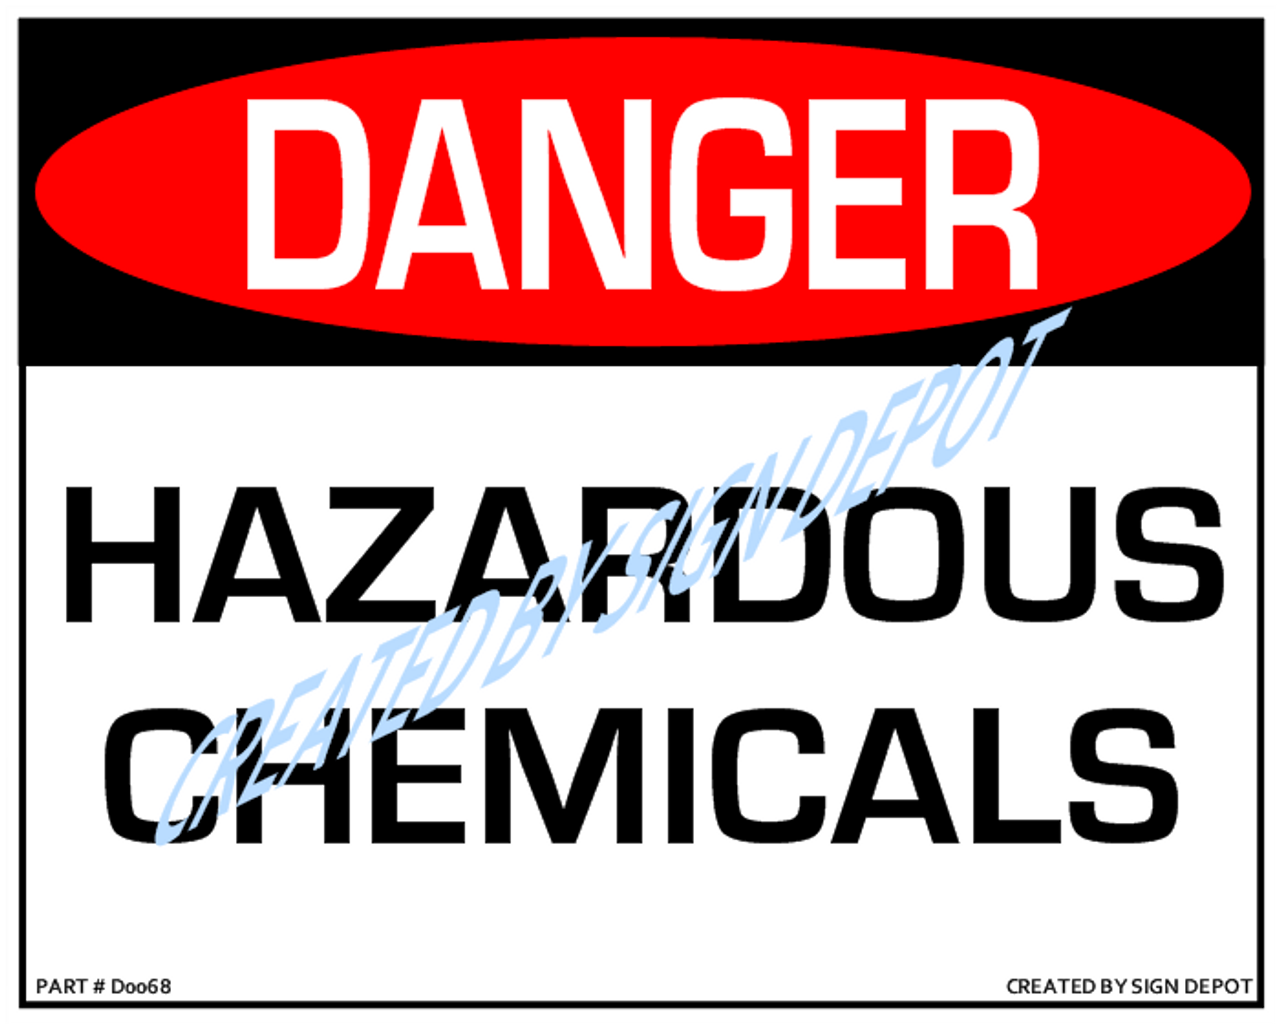 Danger, Hazardous Chemicals Sign, Download, 8